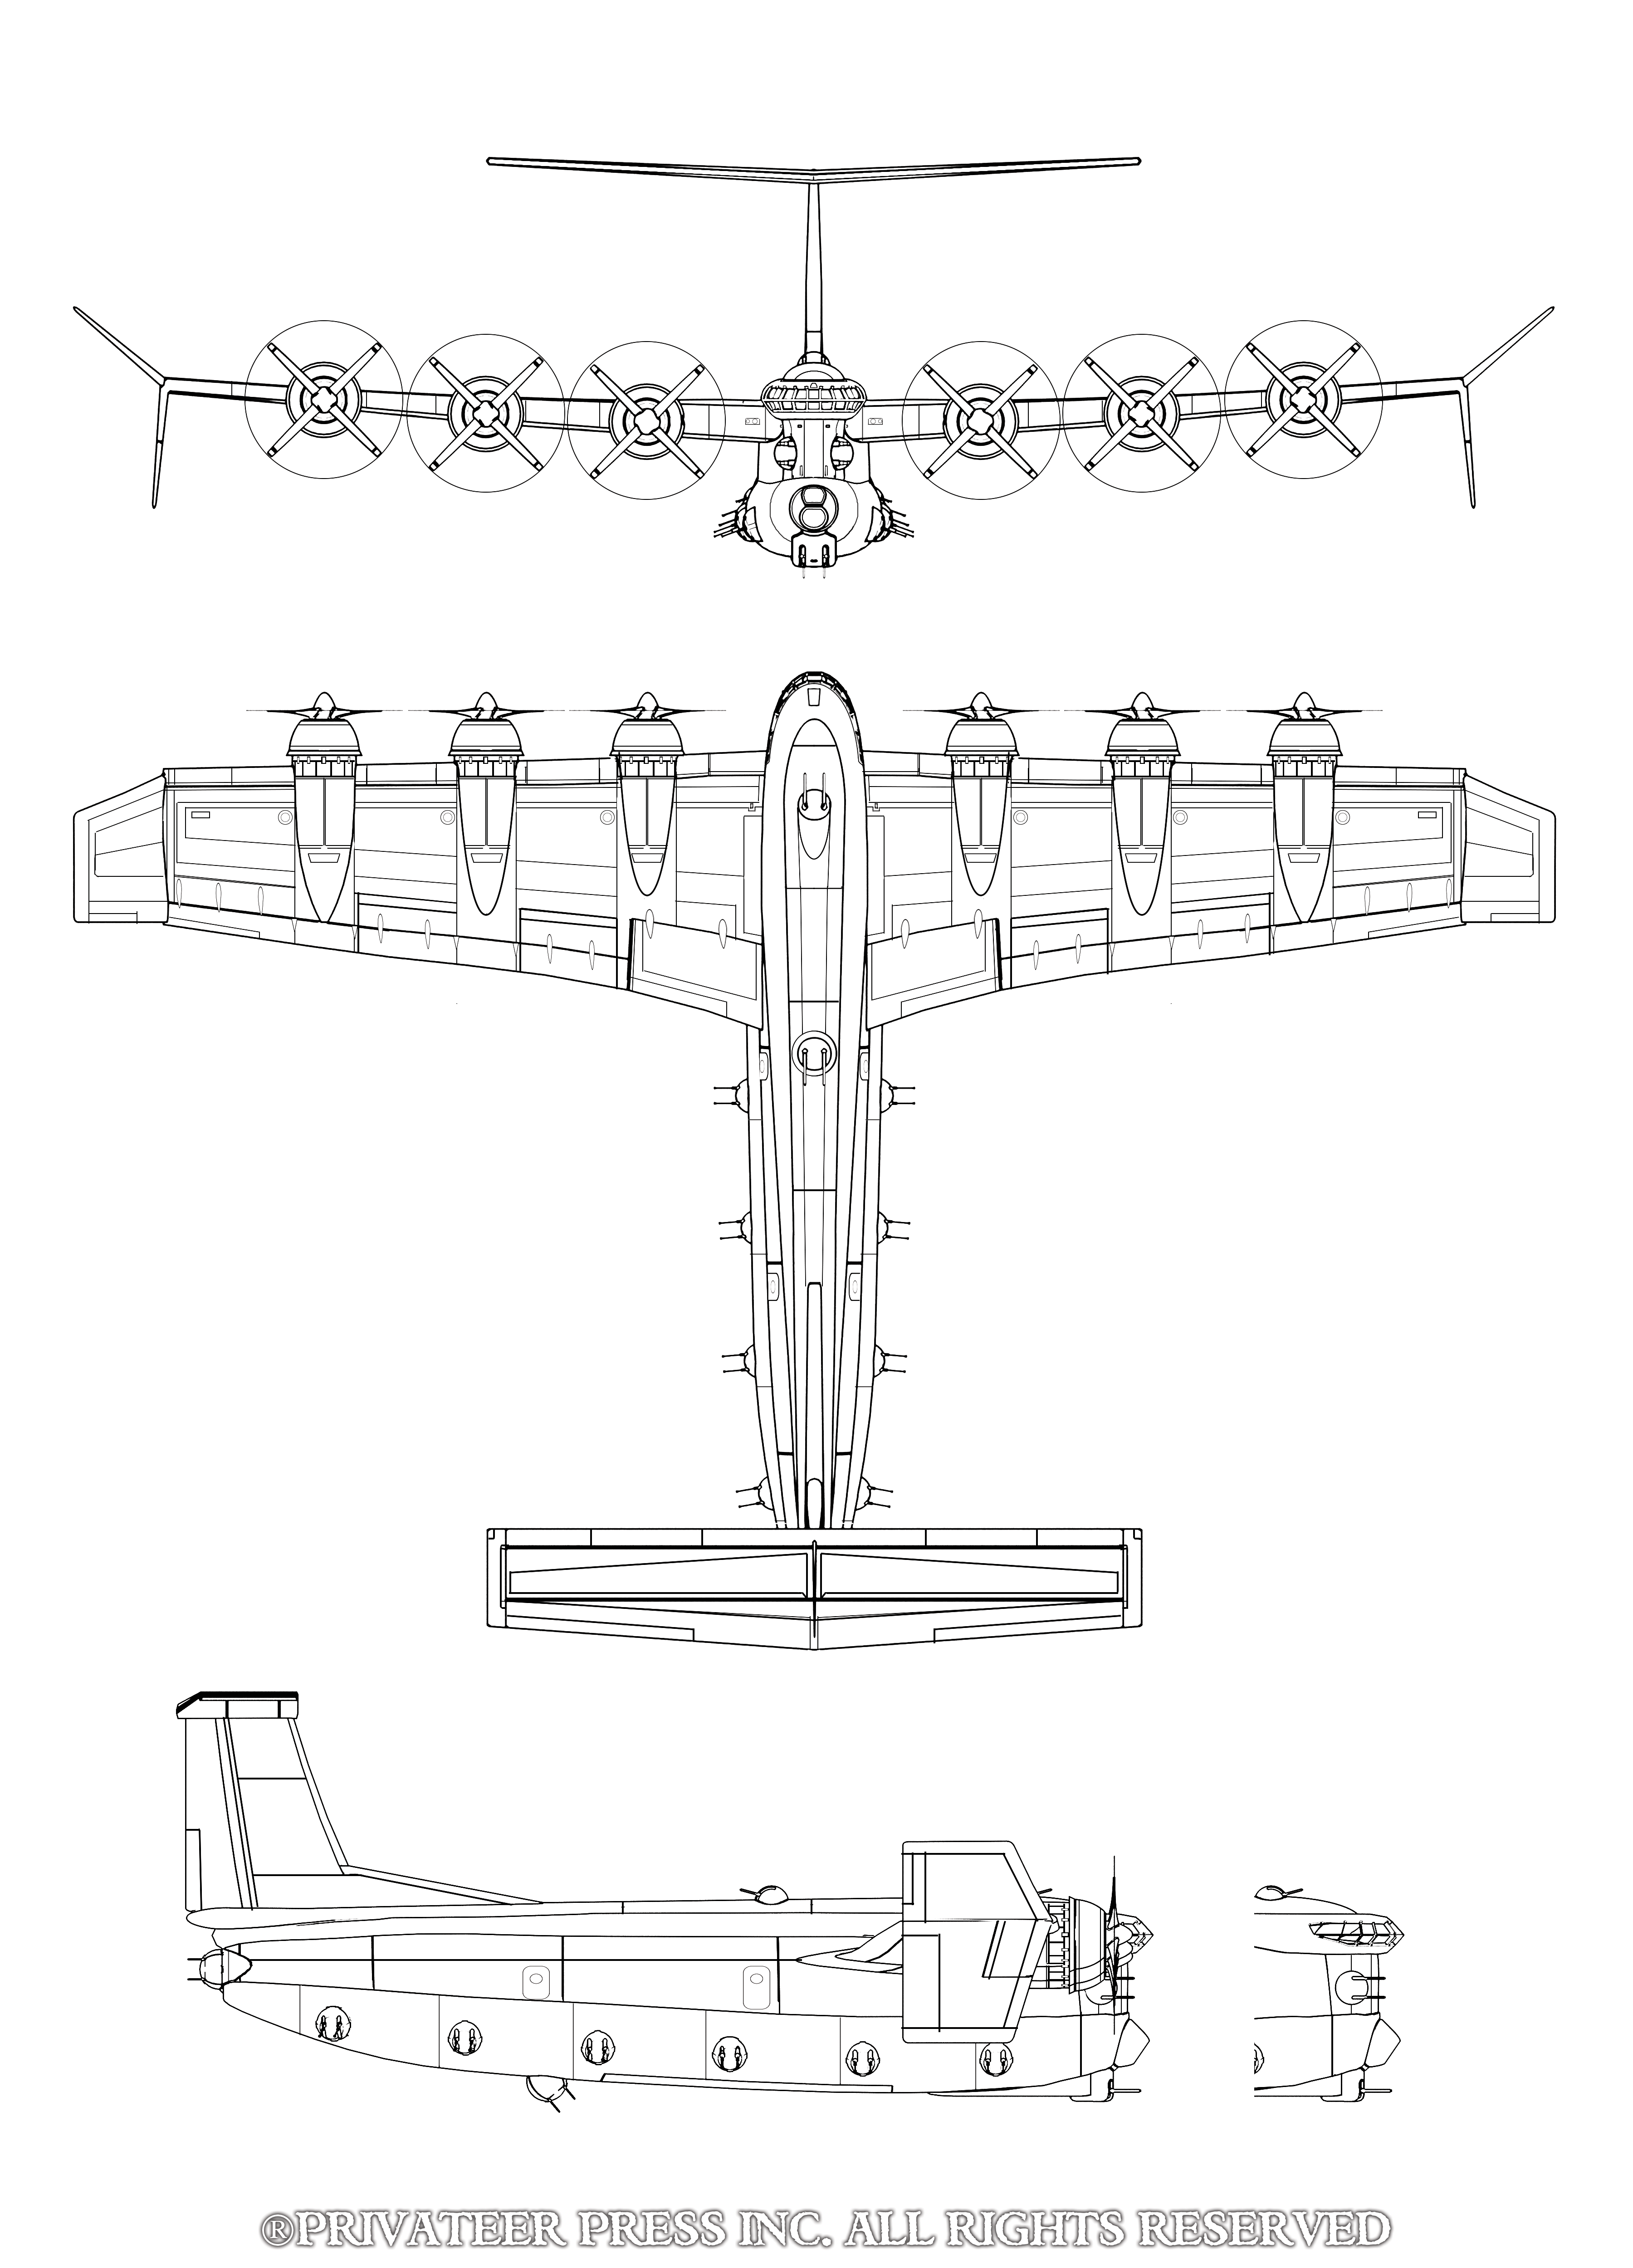 Tales of the Invisible Hand Airship Schematics with Author ... on